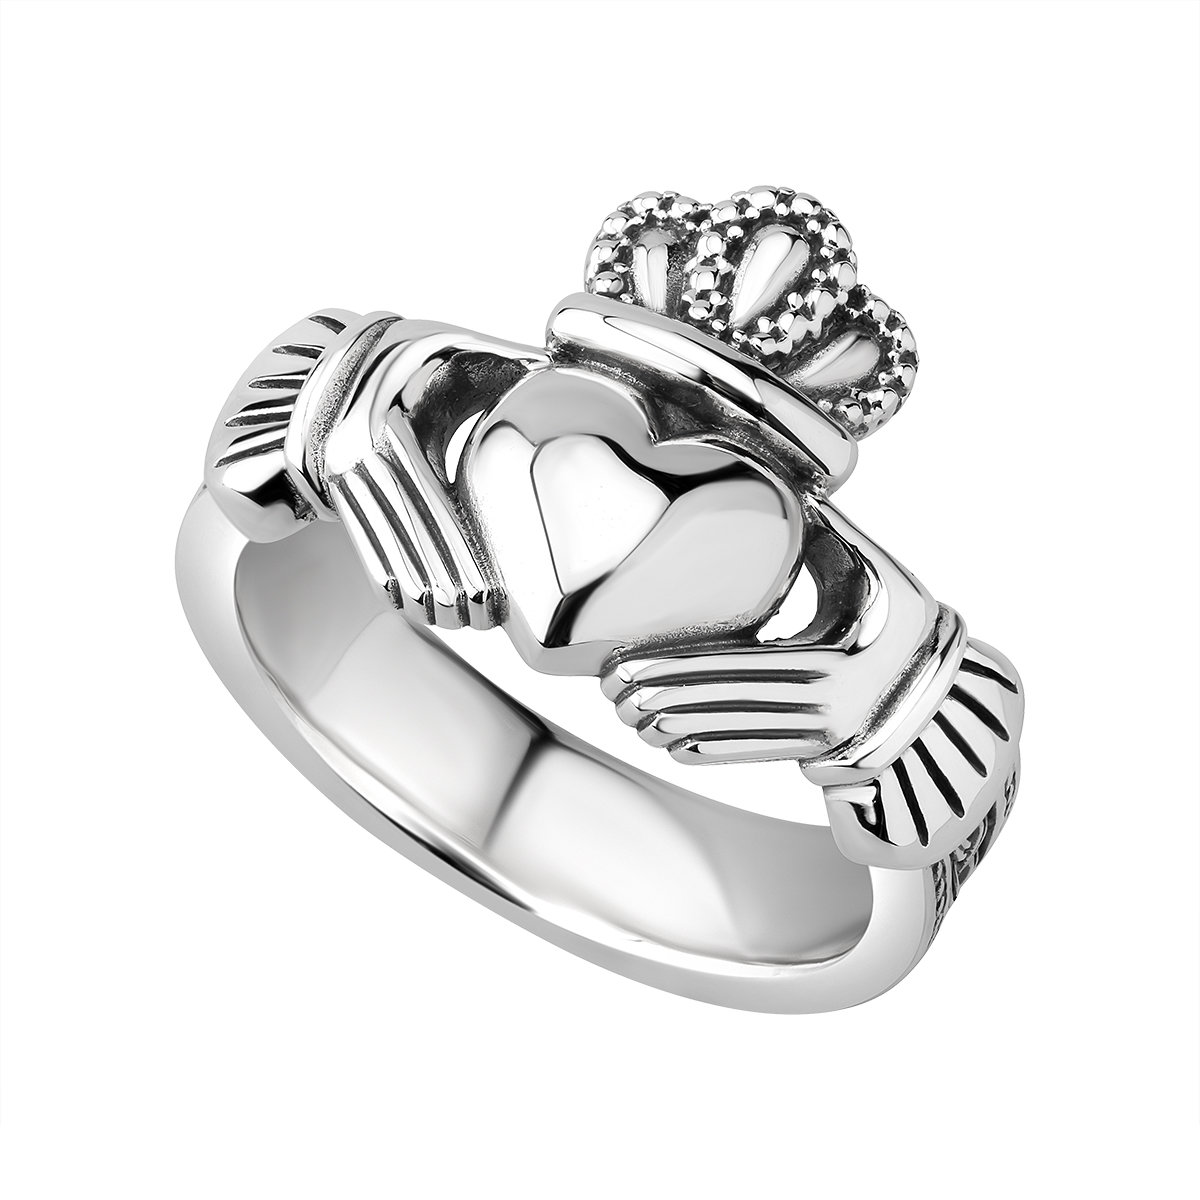 sterling silver heavy celtic claddagh ring s21070 from Solvar